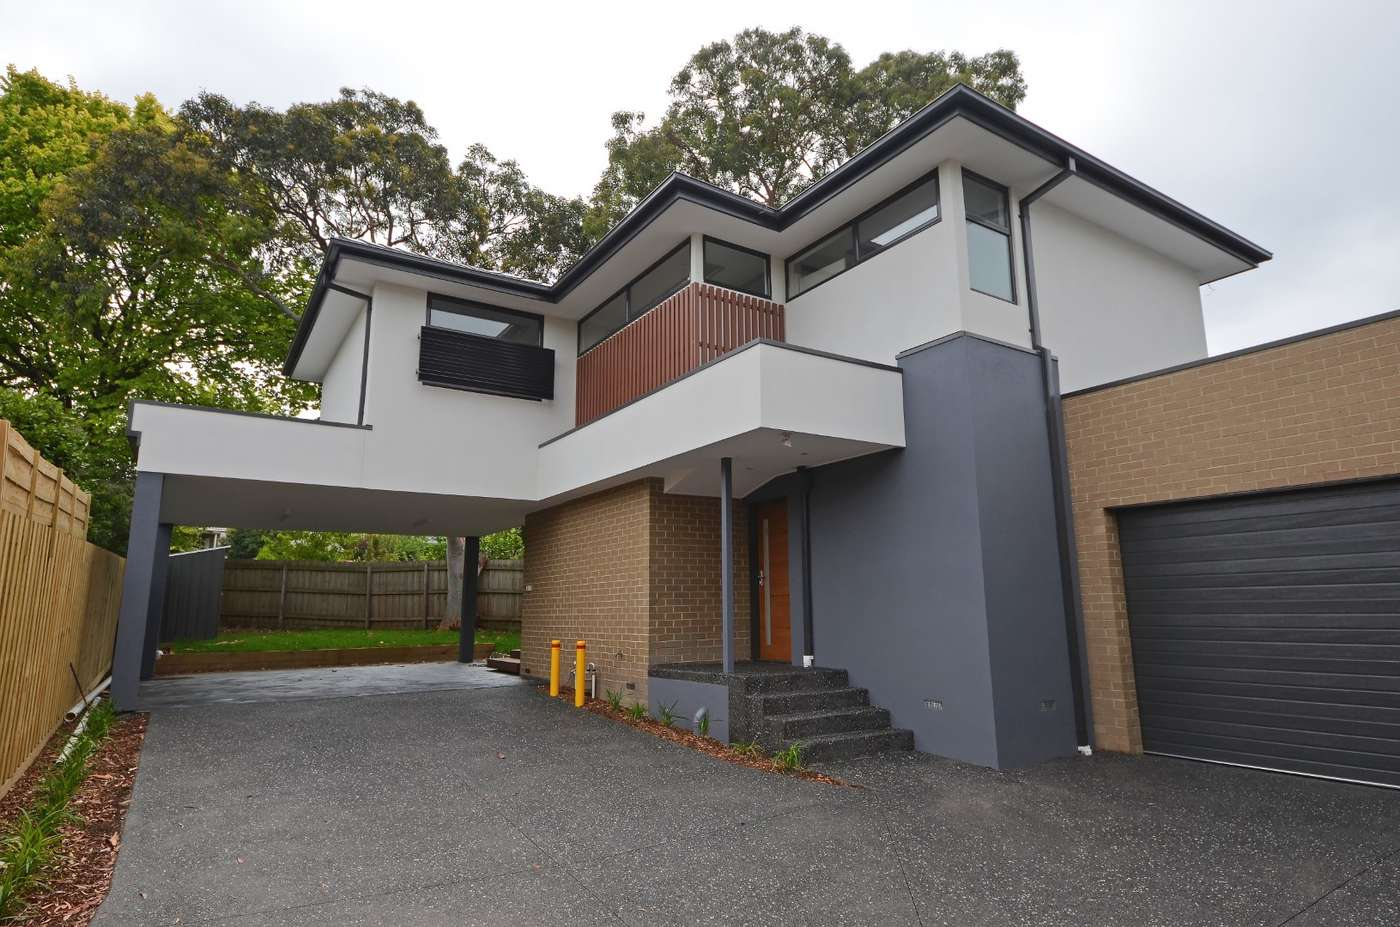 Main view of Homely house listing, 3/7 Walter Street, Glen Waverley, VIC 3150